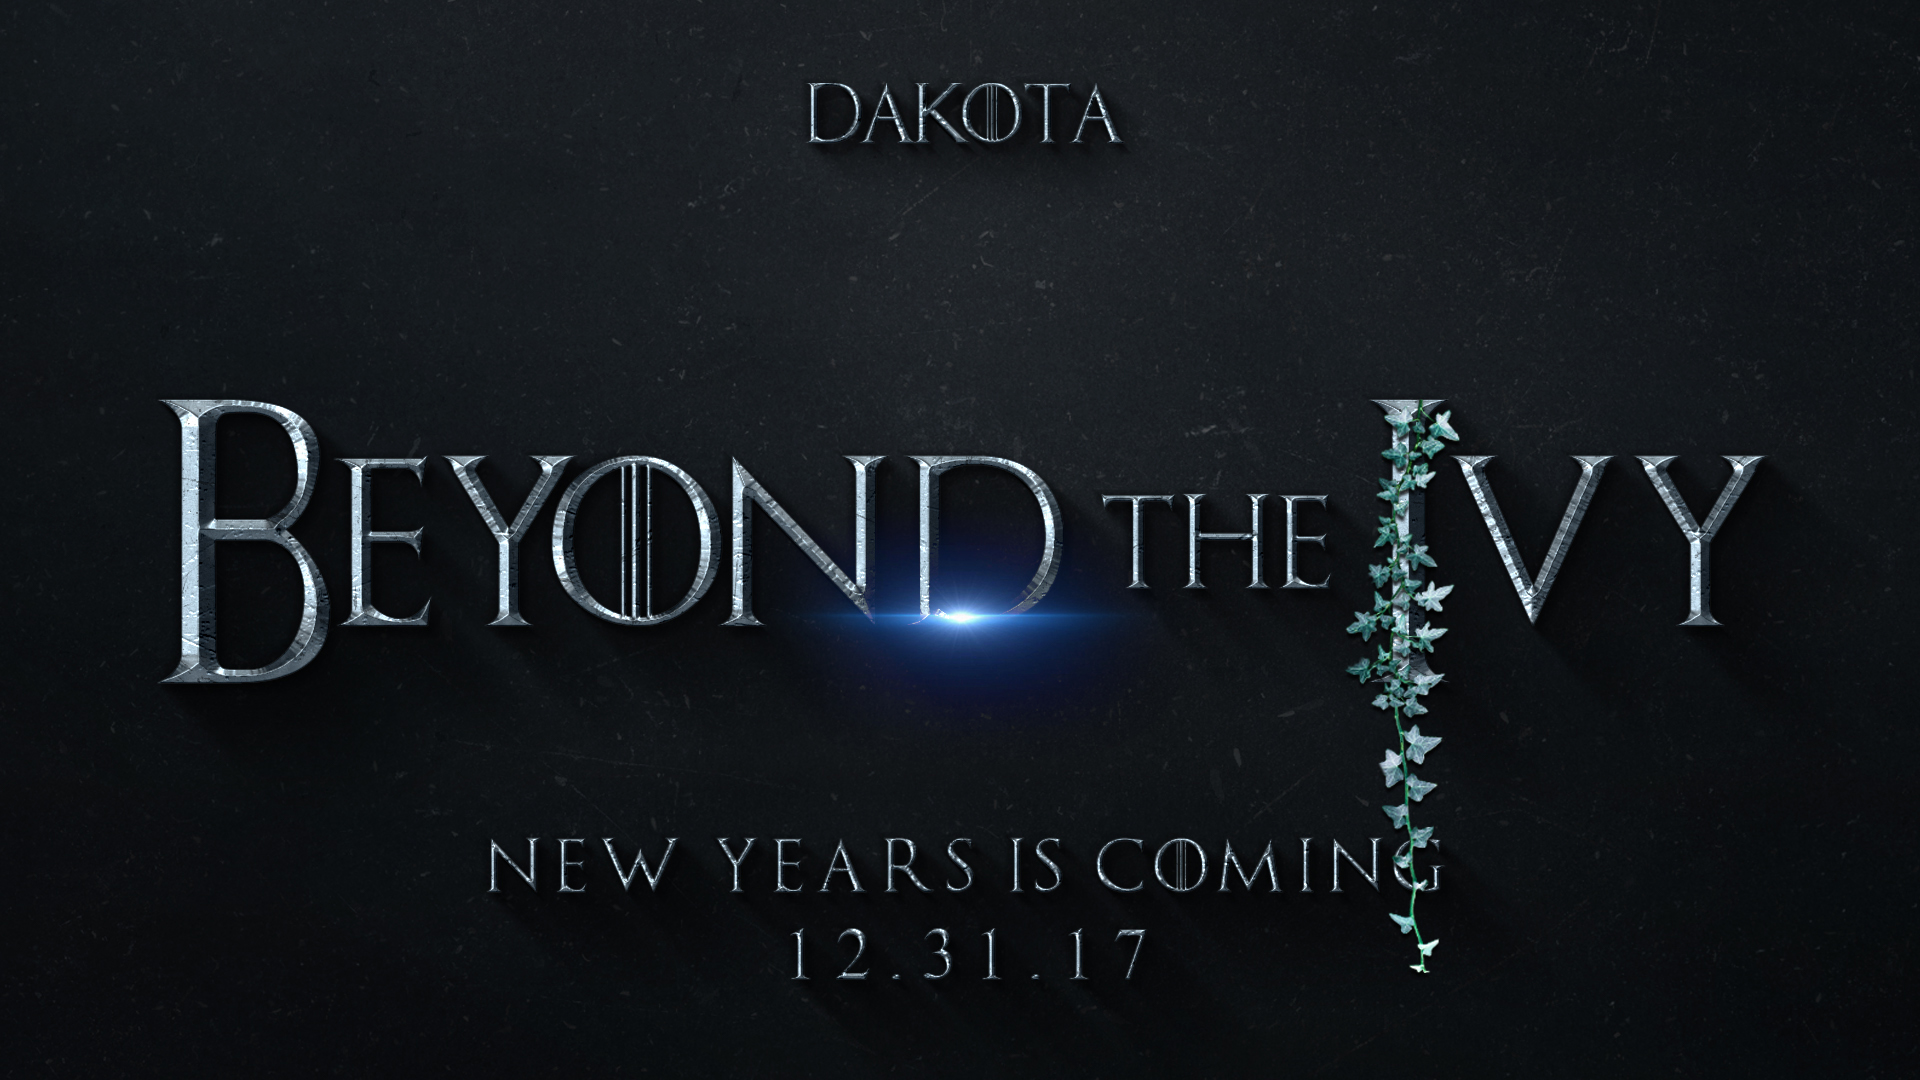 Tickets for DAKOTA NEW YEARS EVE 2018 - BEYOND THE IVY in Scottsdale from SLE TIX